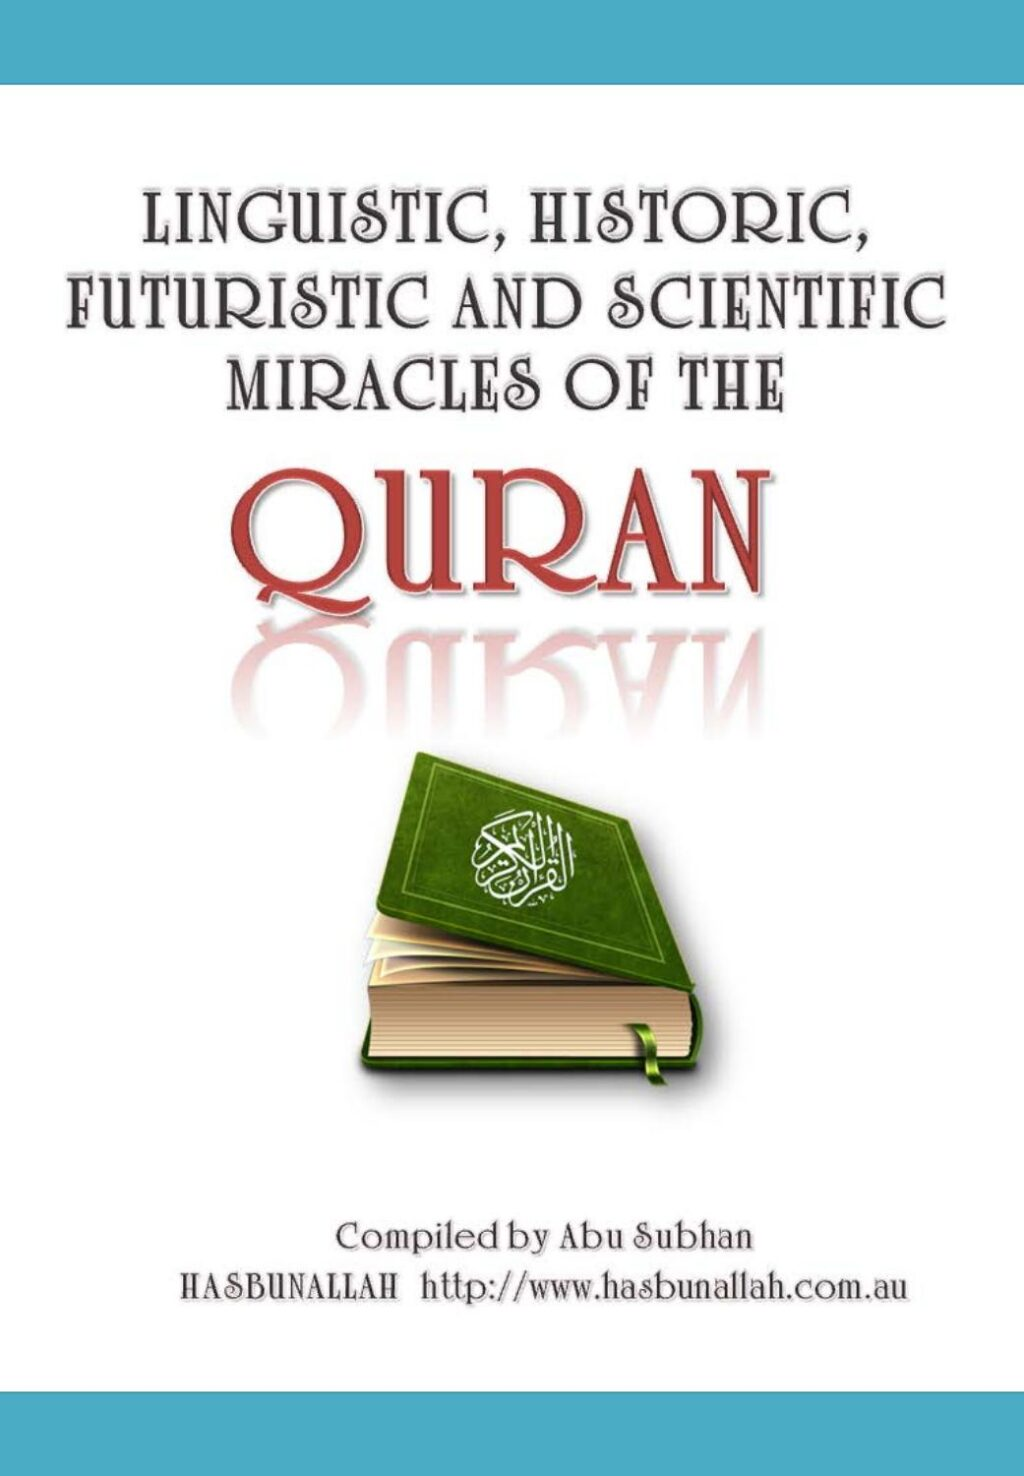 """the Quran miracles"" The relation between Qur'an & science (2/3)"